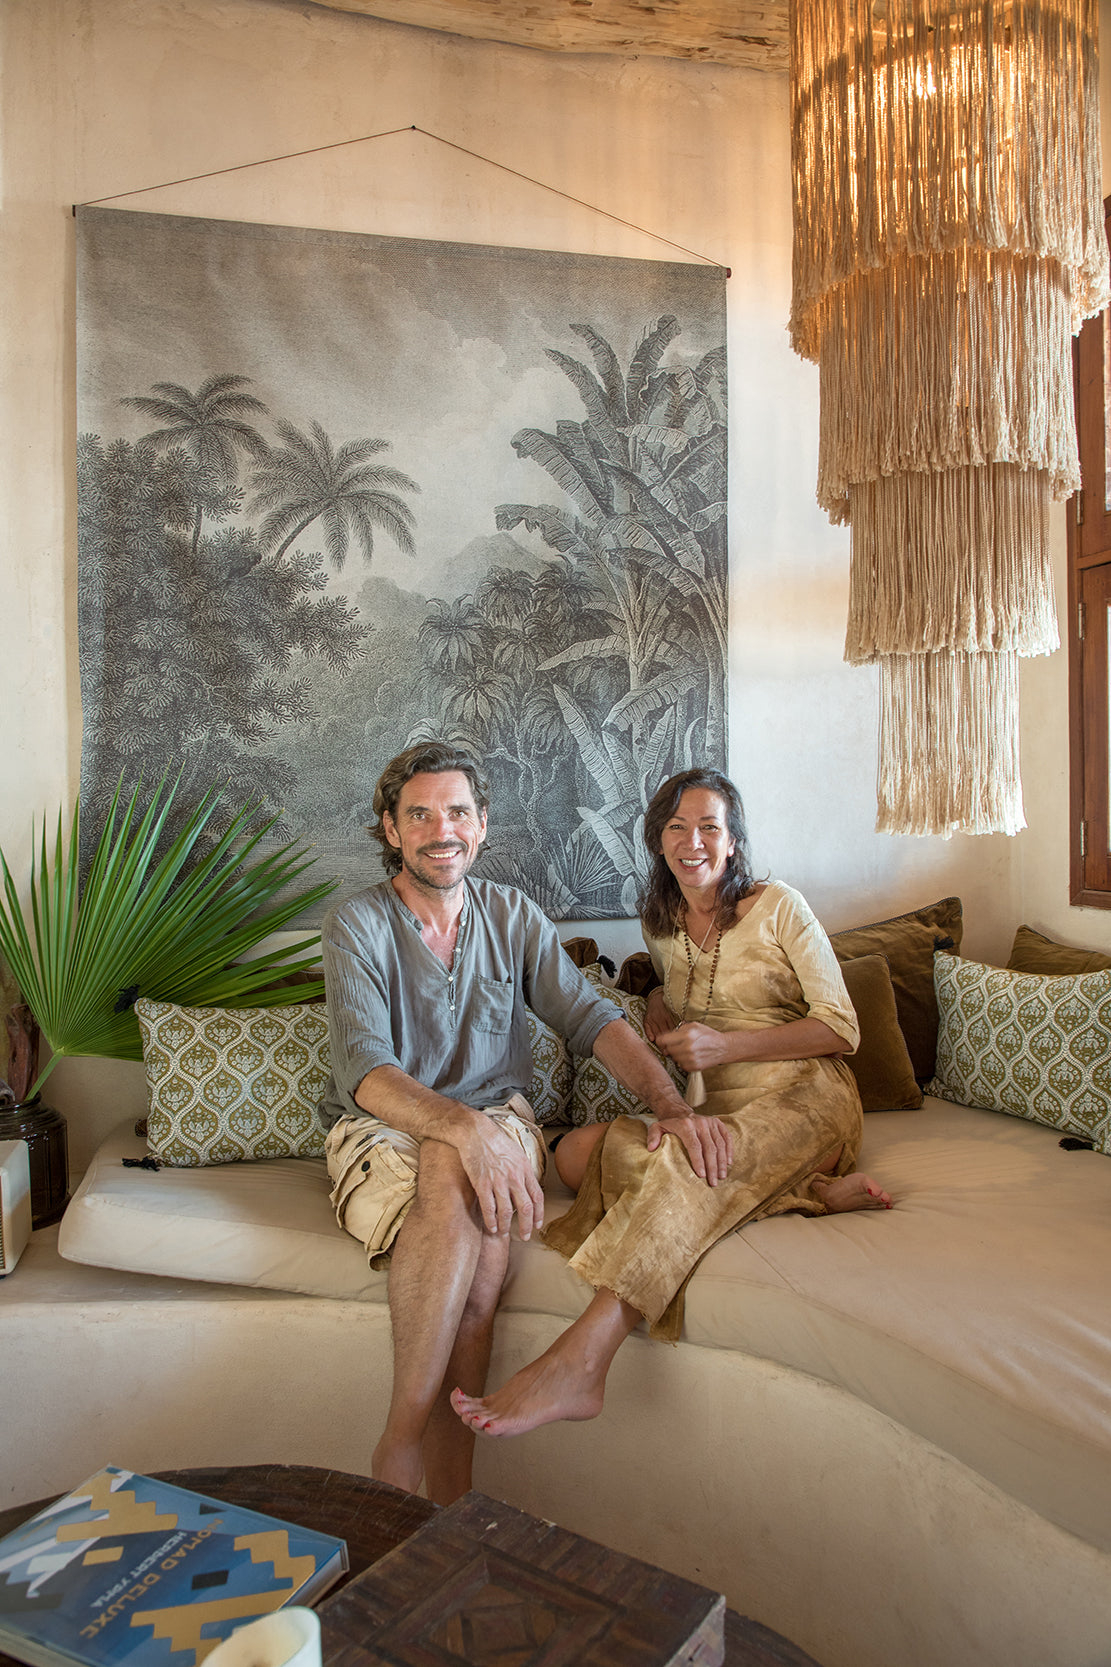 Casa Cat Ba, Isla Holbox - hotel owners Colette and Pierre-Marie seated on a couch